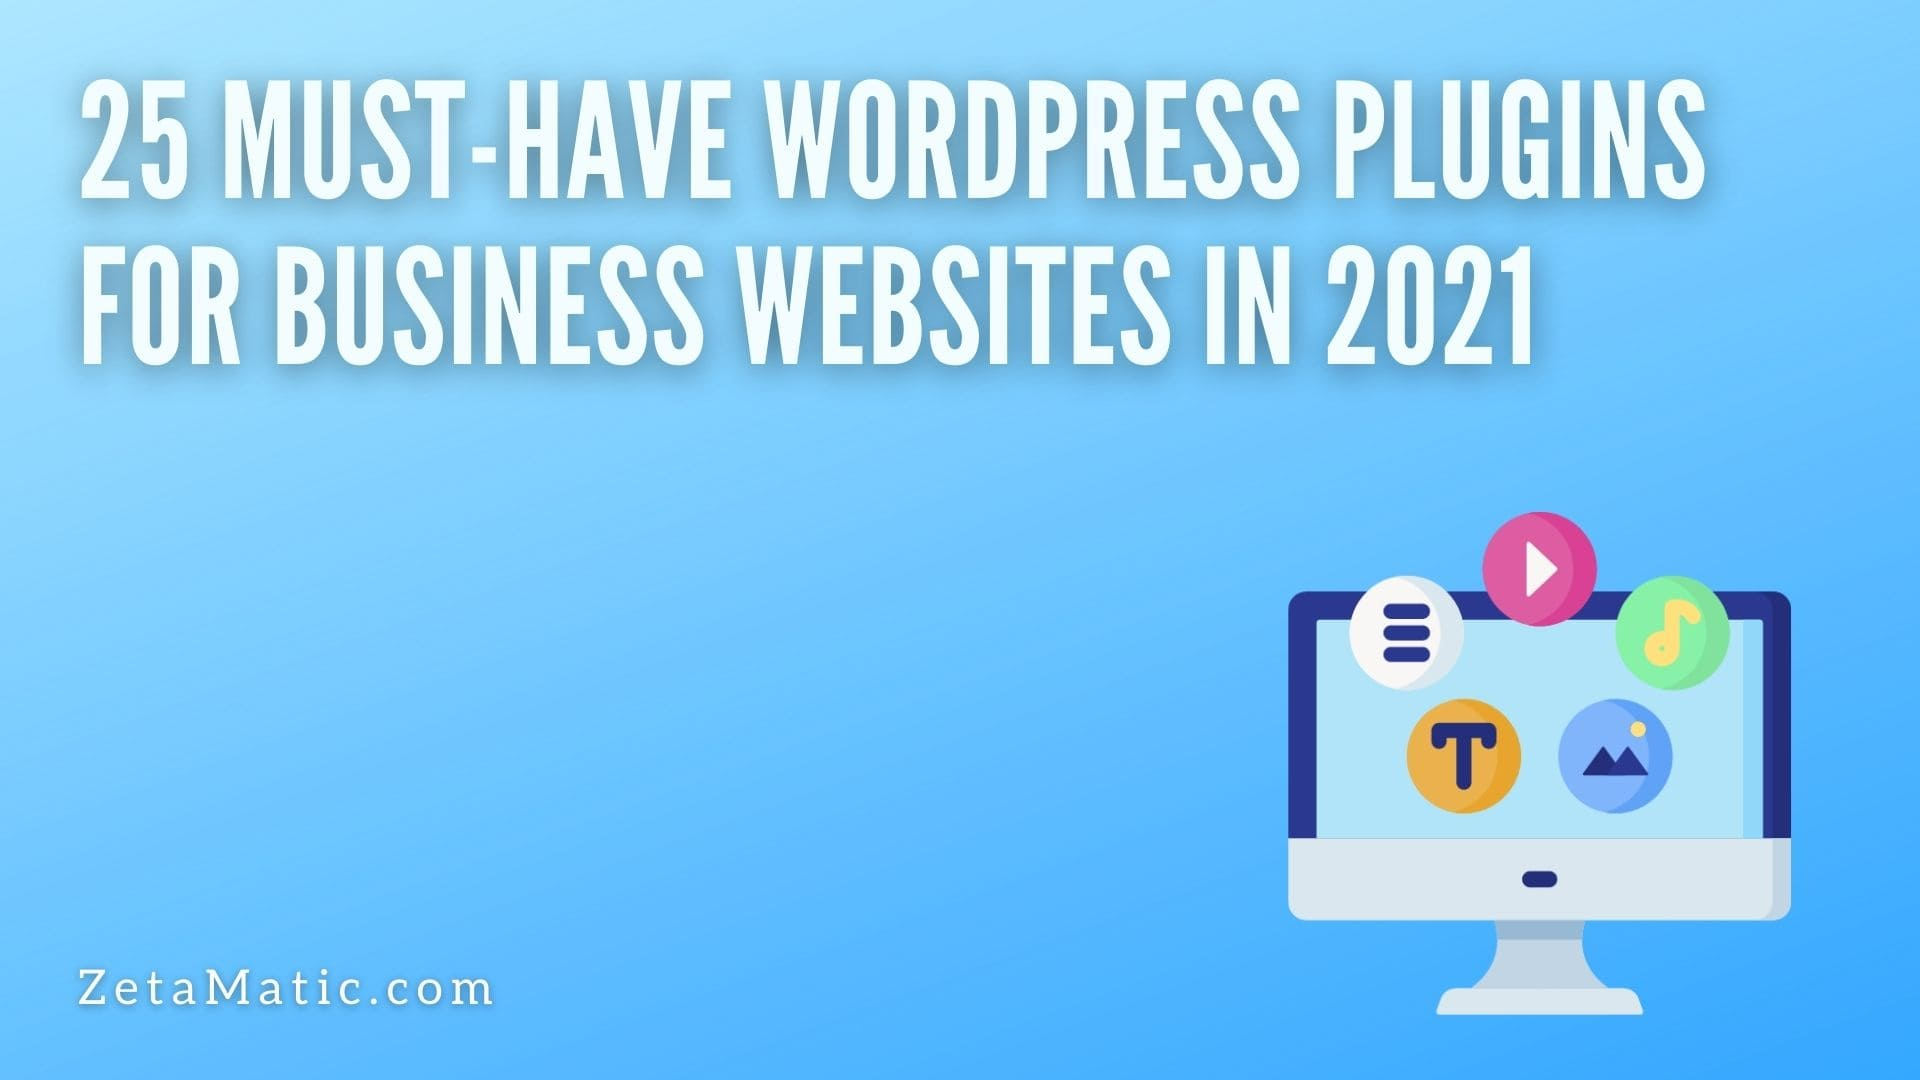 25 Must-Have WordPress Plugins for Business Websites in 2021